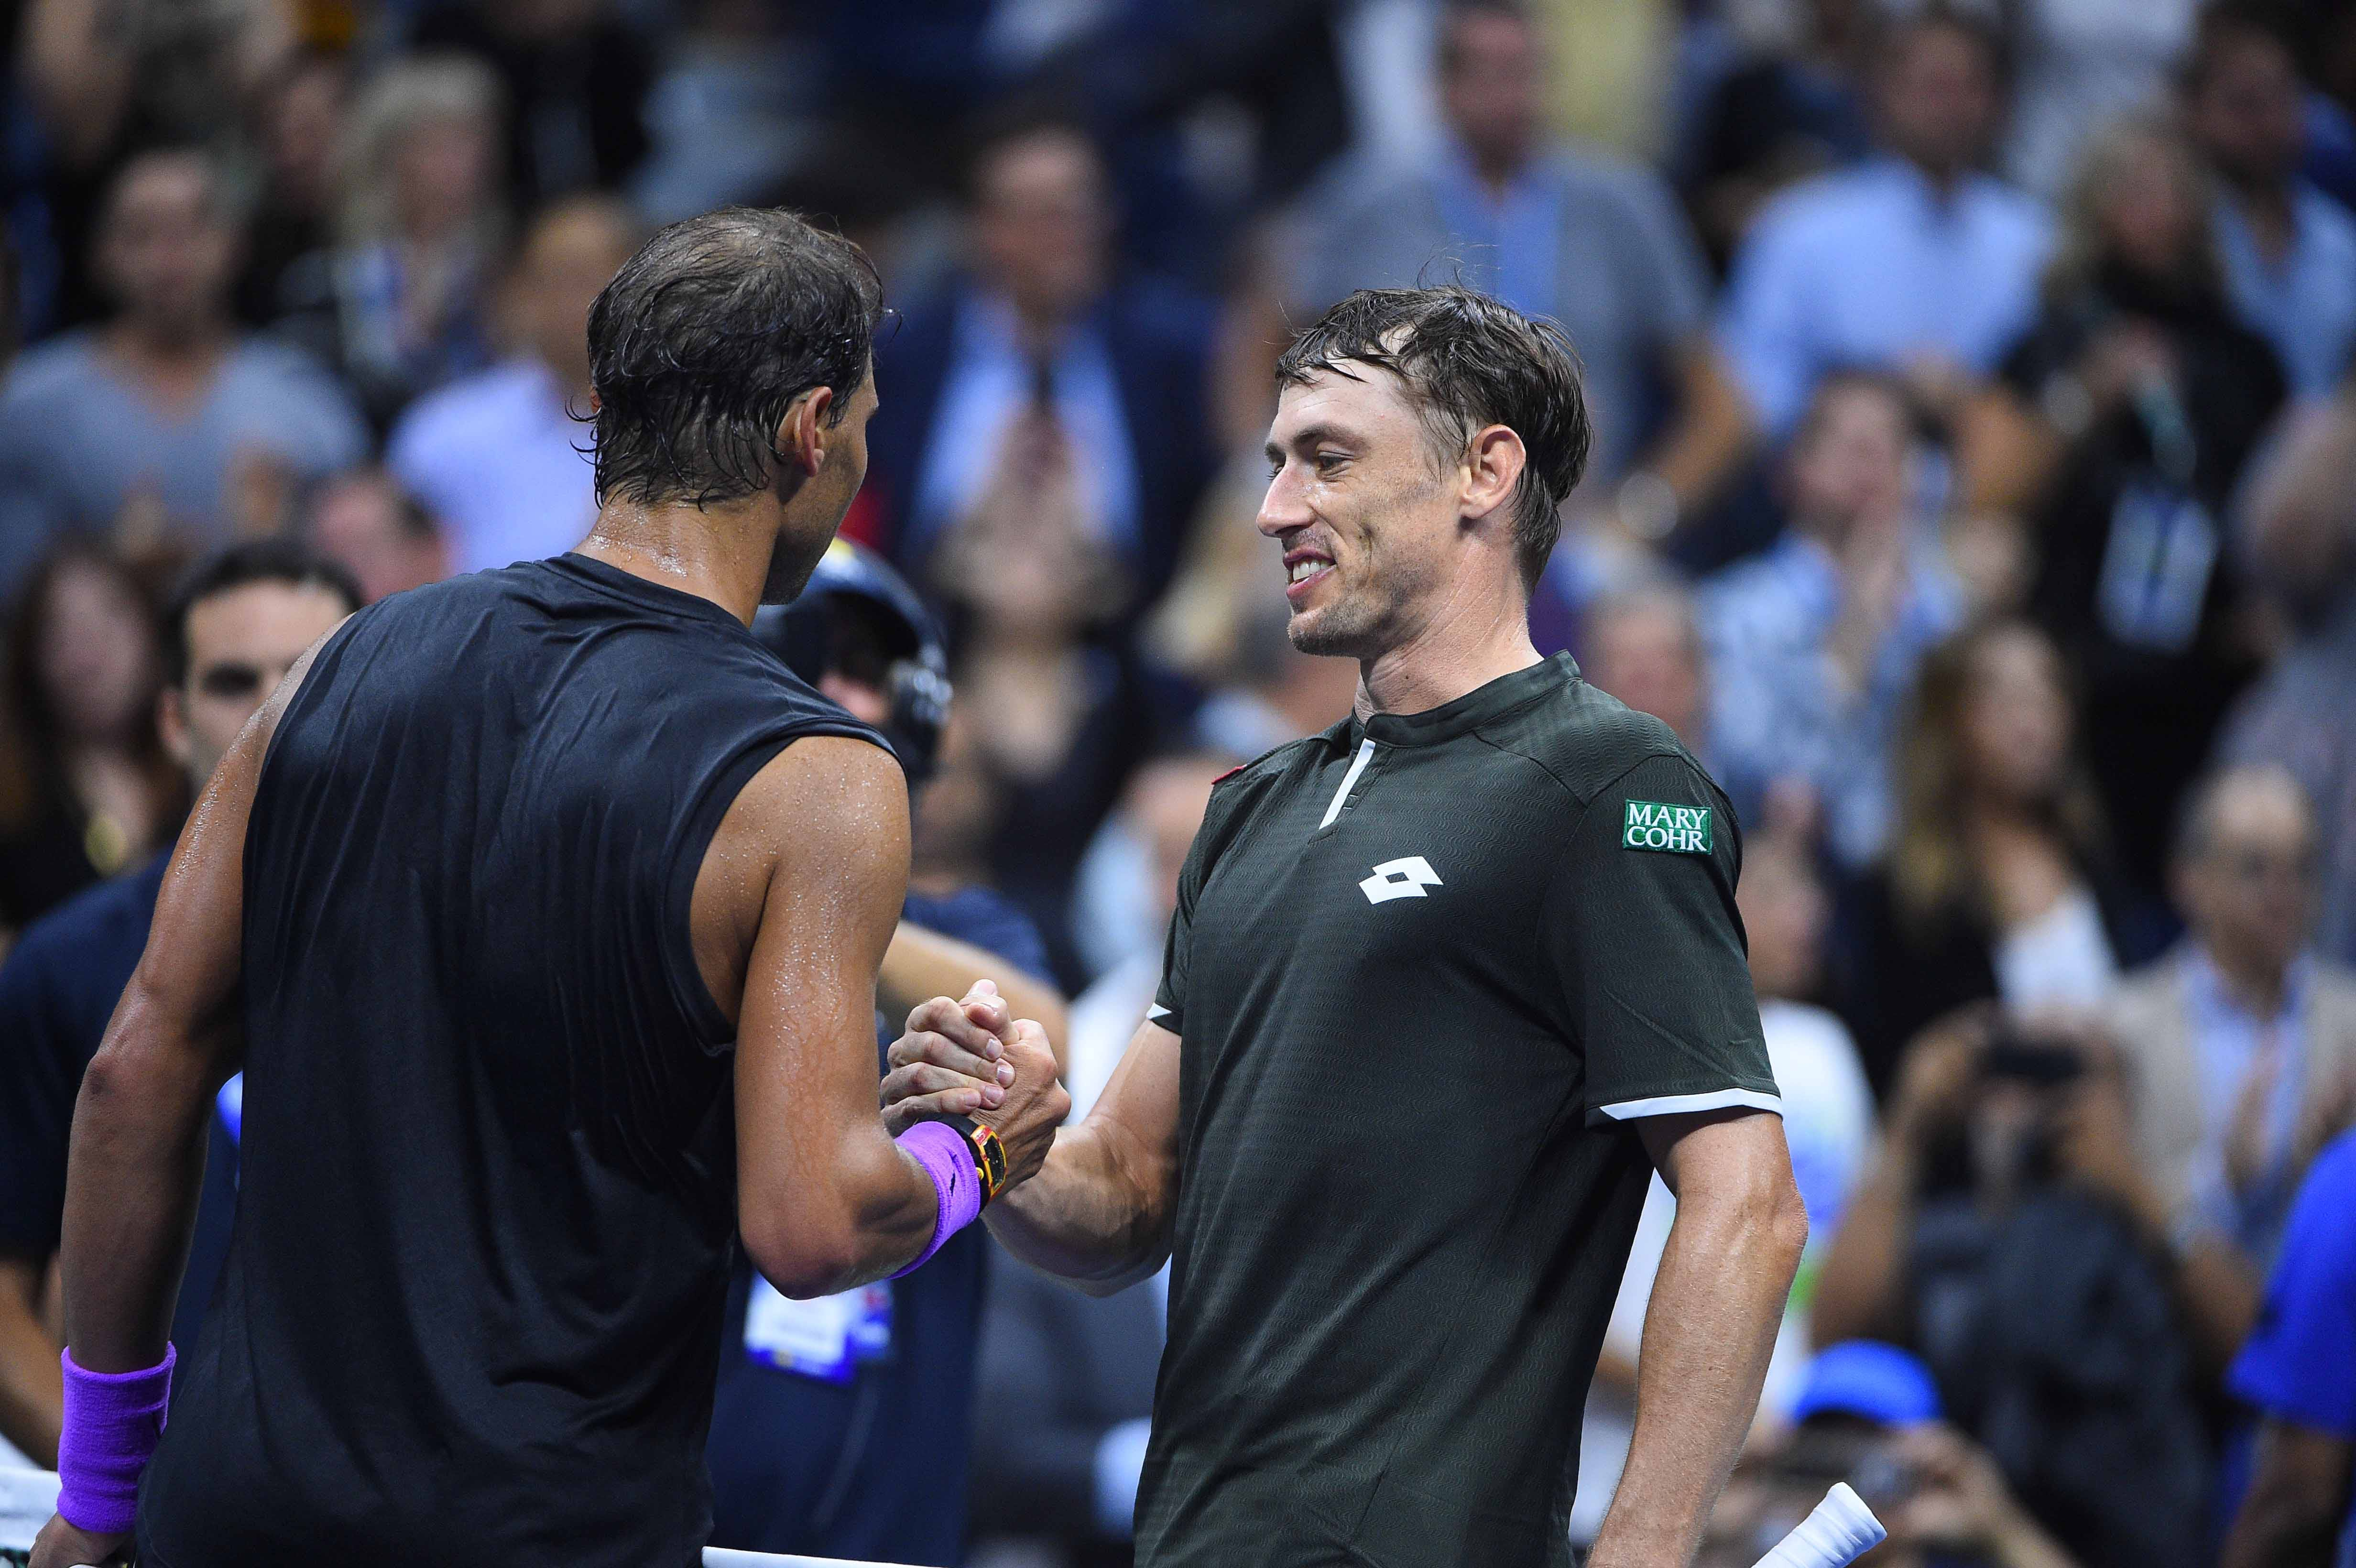 Rafael Nadal and John Millman at the 2019 US Open